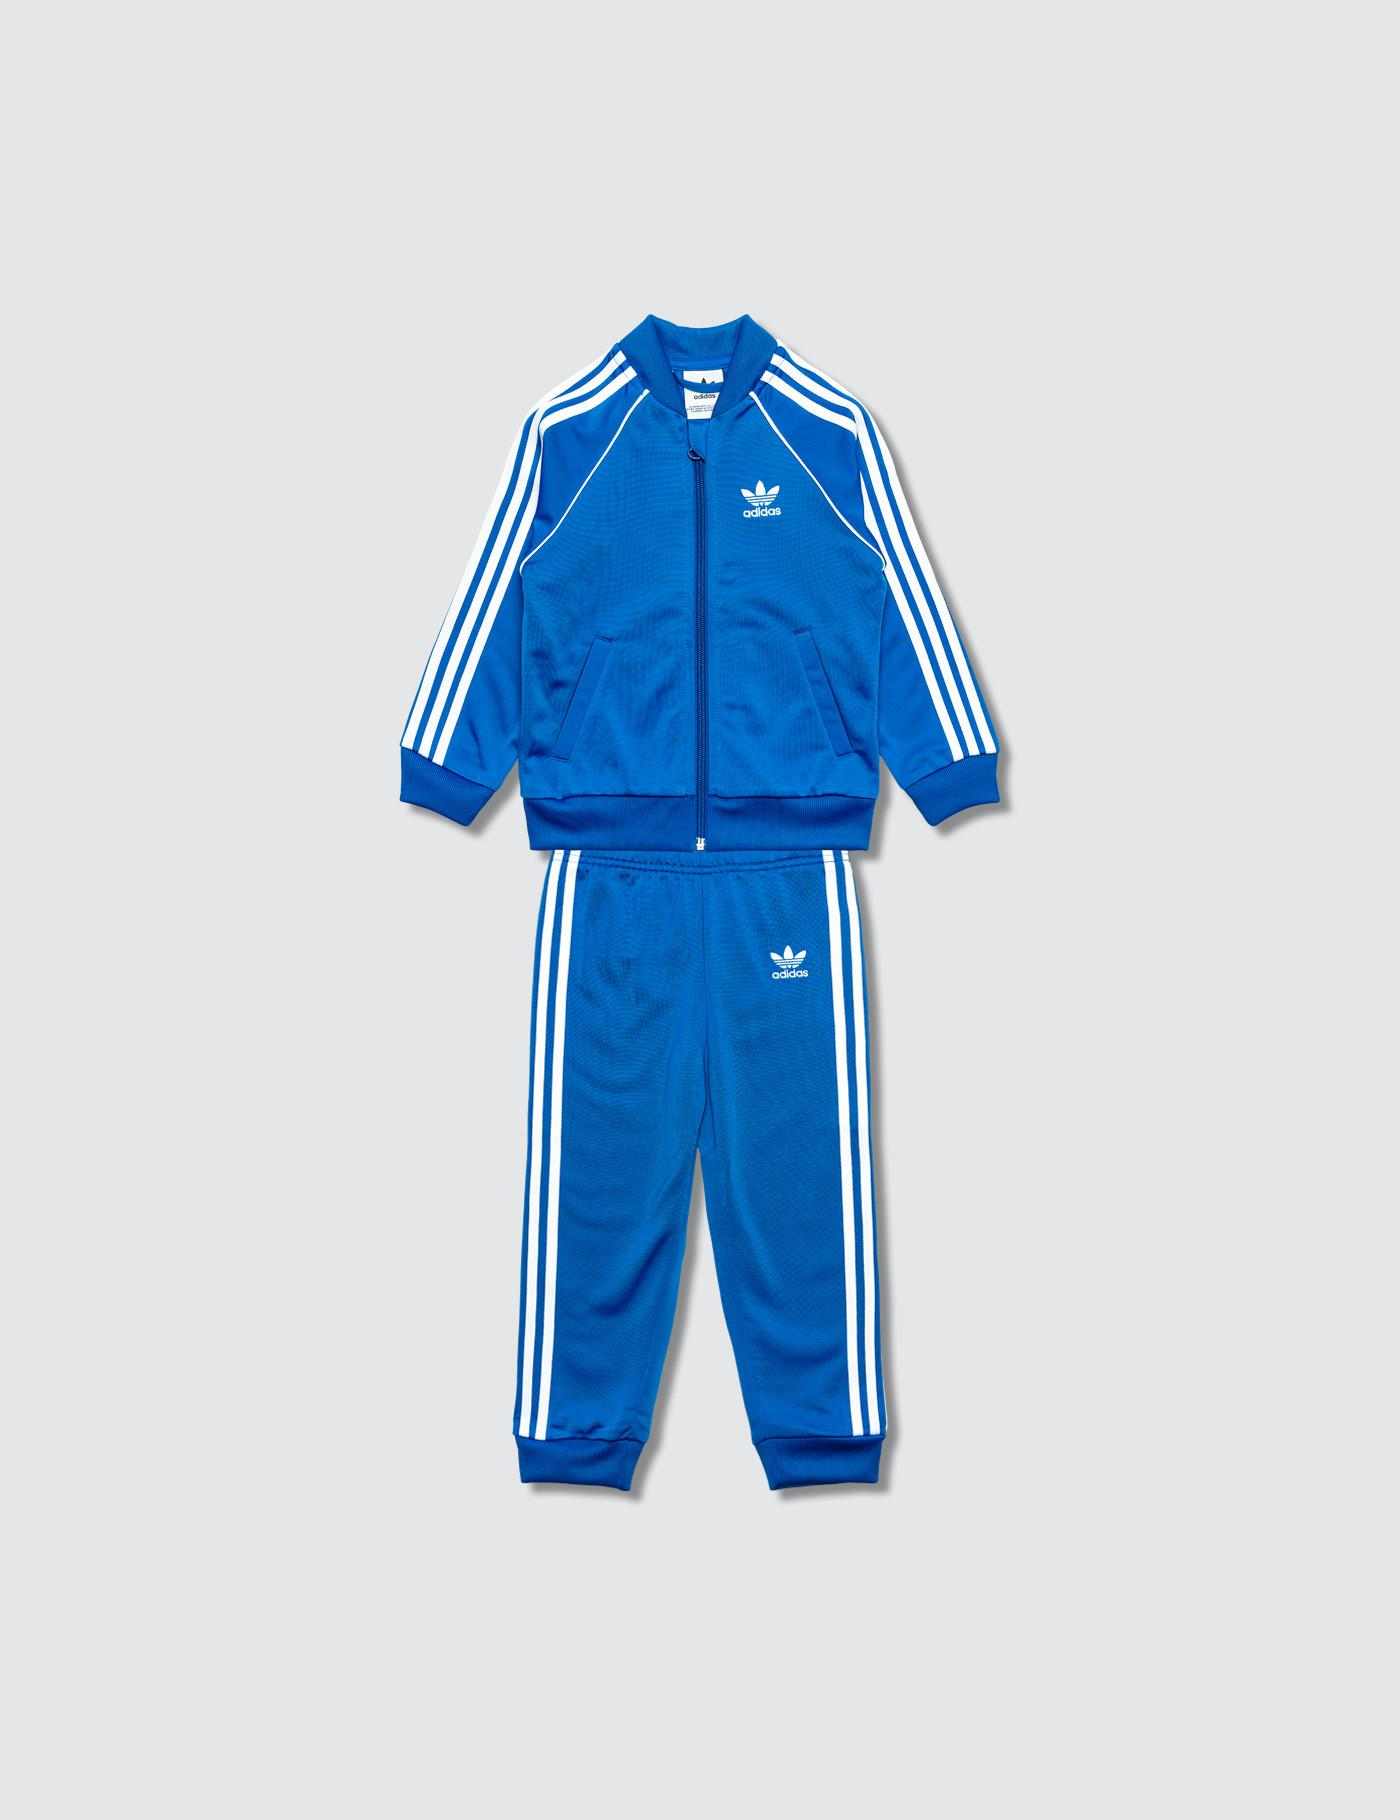 48edfcf5ceb7 Lyst - adidas Originals Superstar Track Suit in Blue for Men